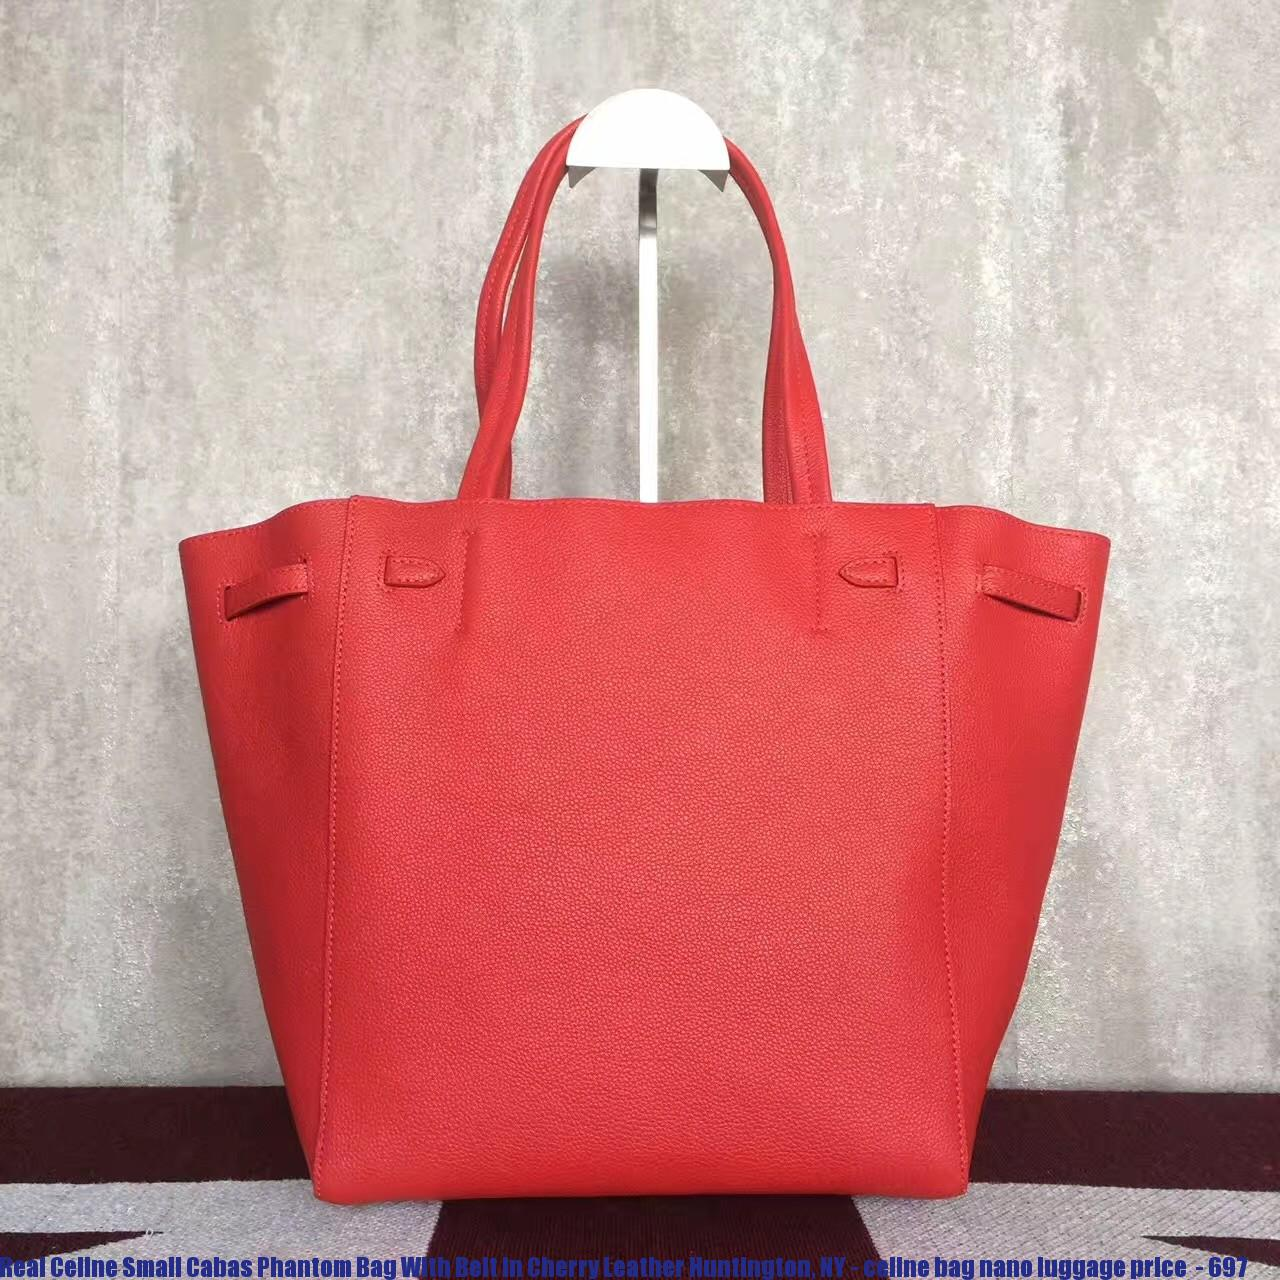 4a4ea1dcdef9 Real Celine Small Cabas Phantom Bag With Belt In Cherry Leather